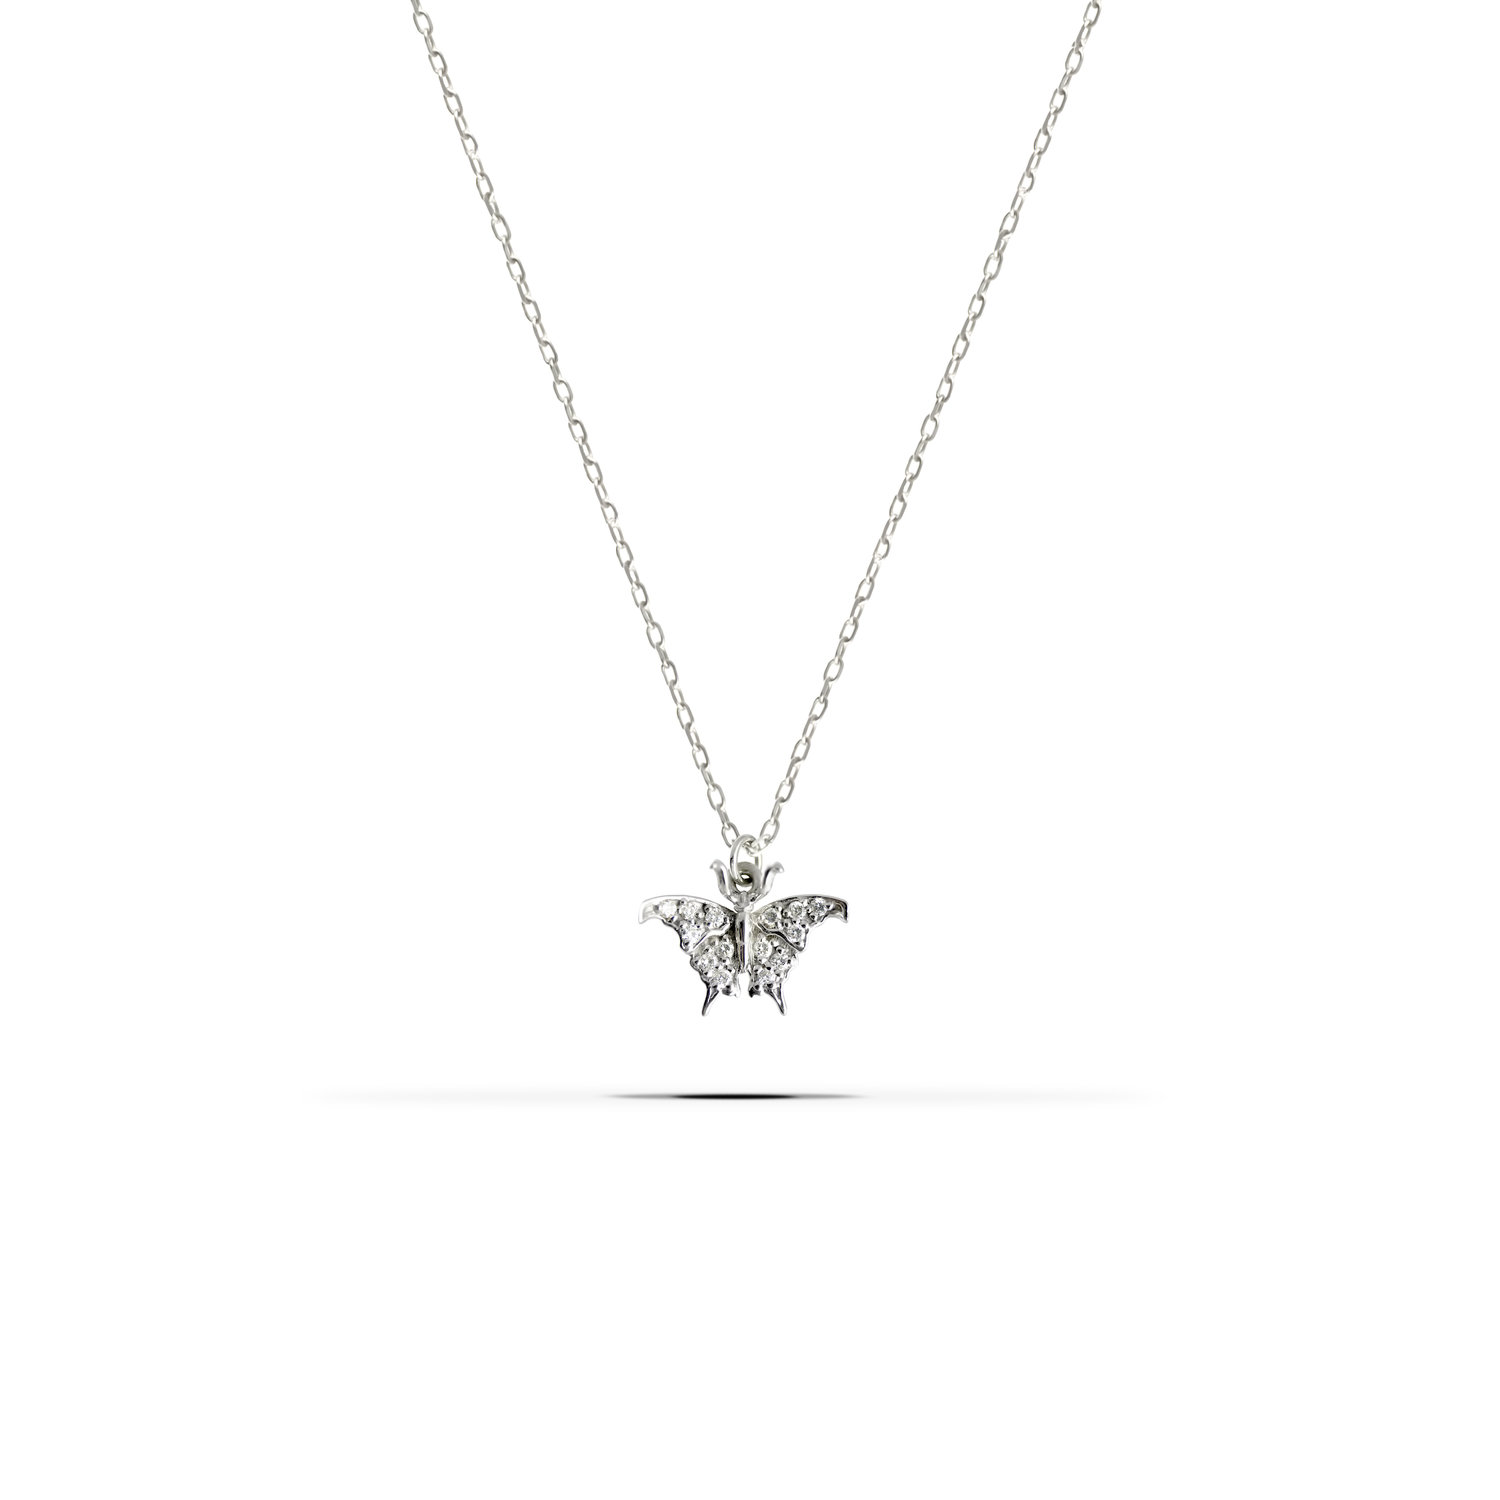 Small Butterfly Diamond Pendant Necklace Front View White Gold J Herwitt